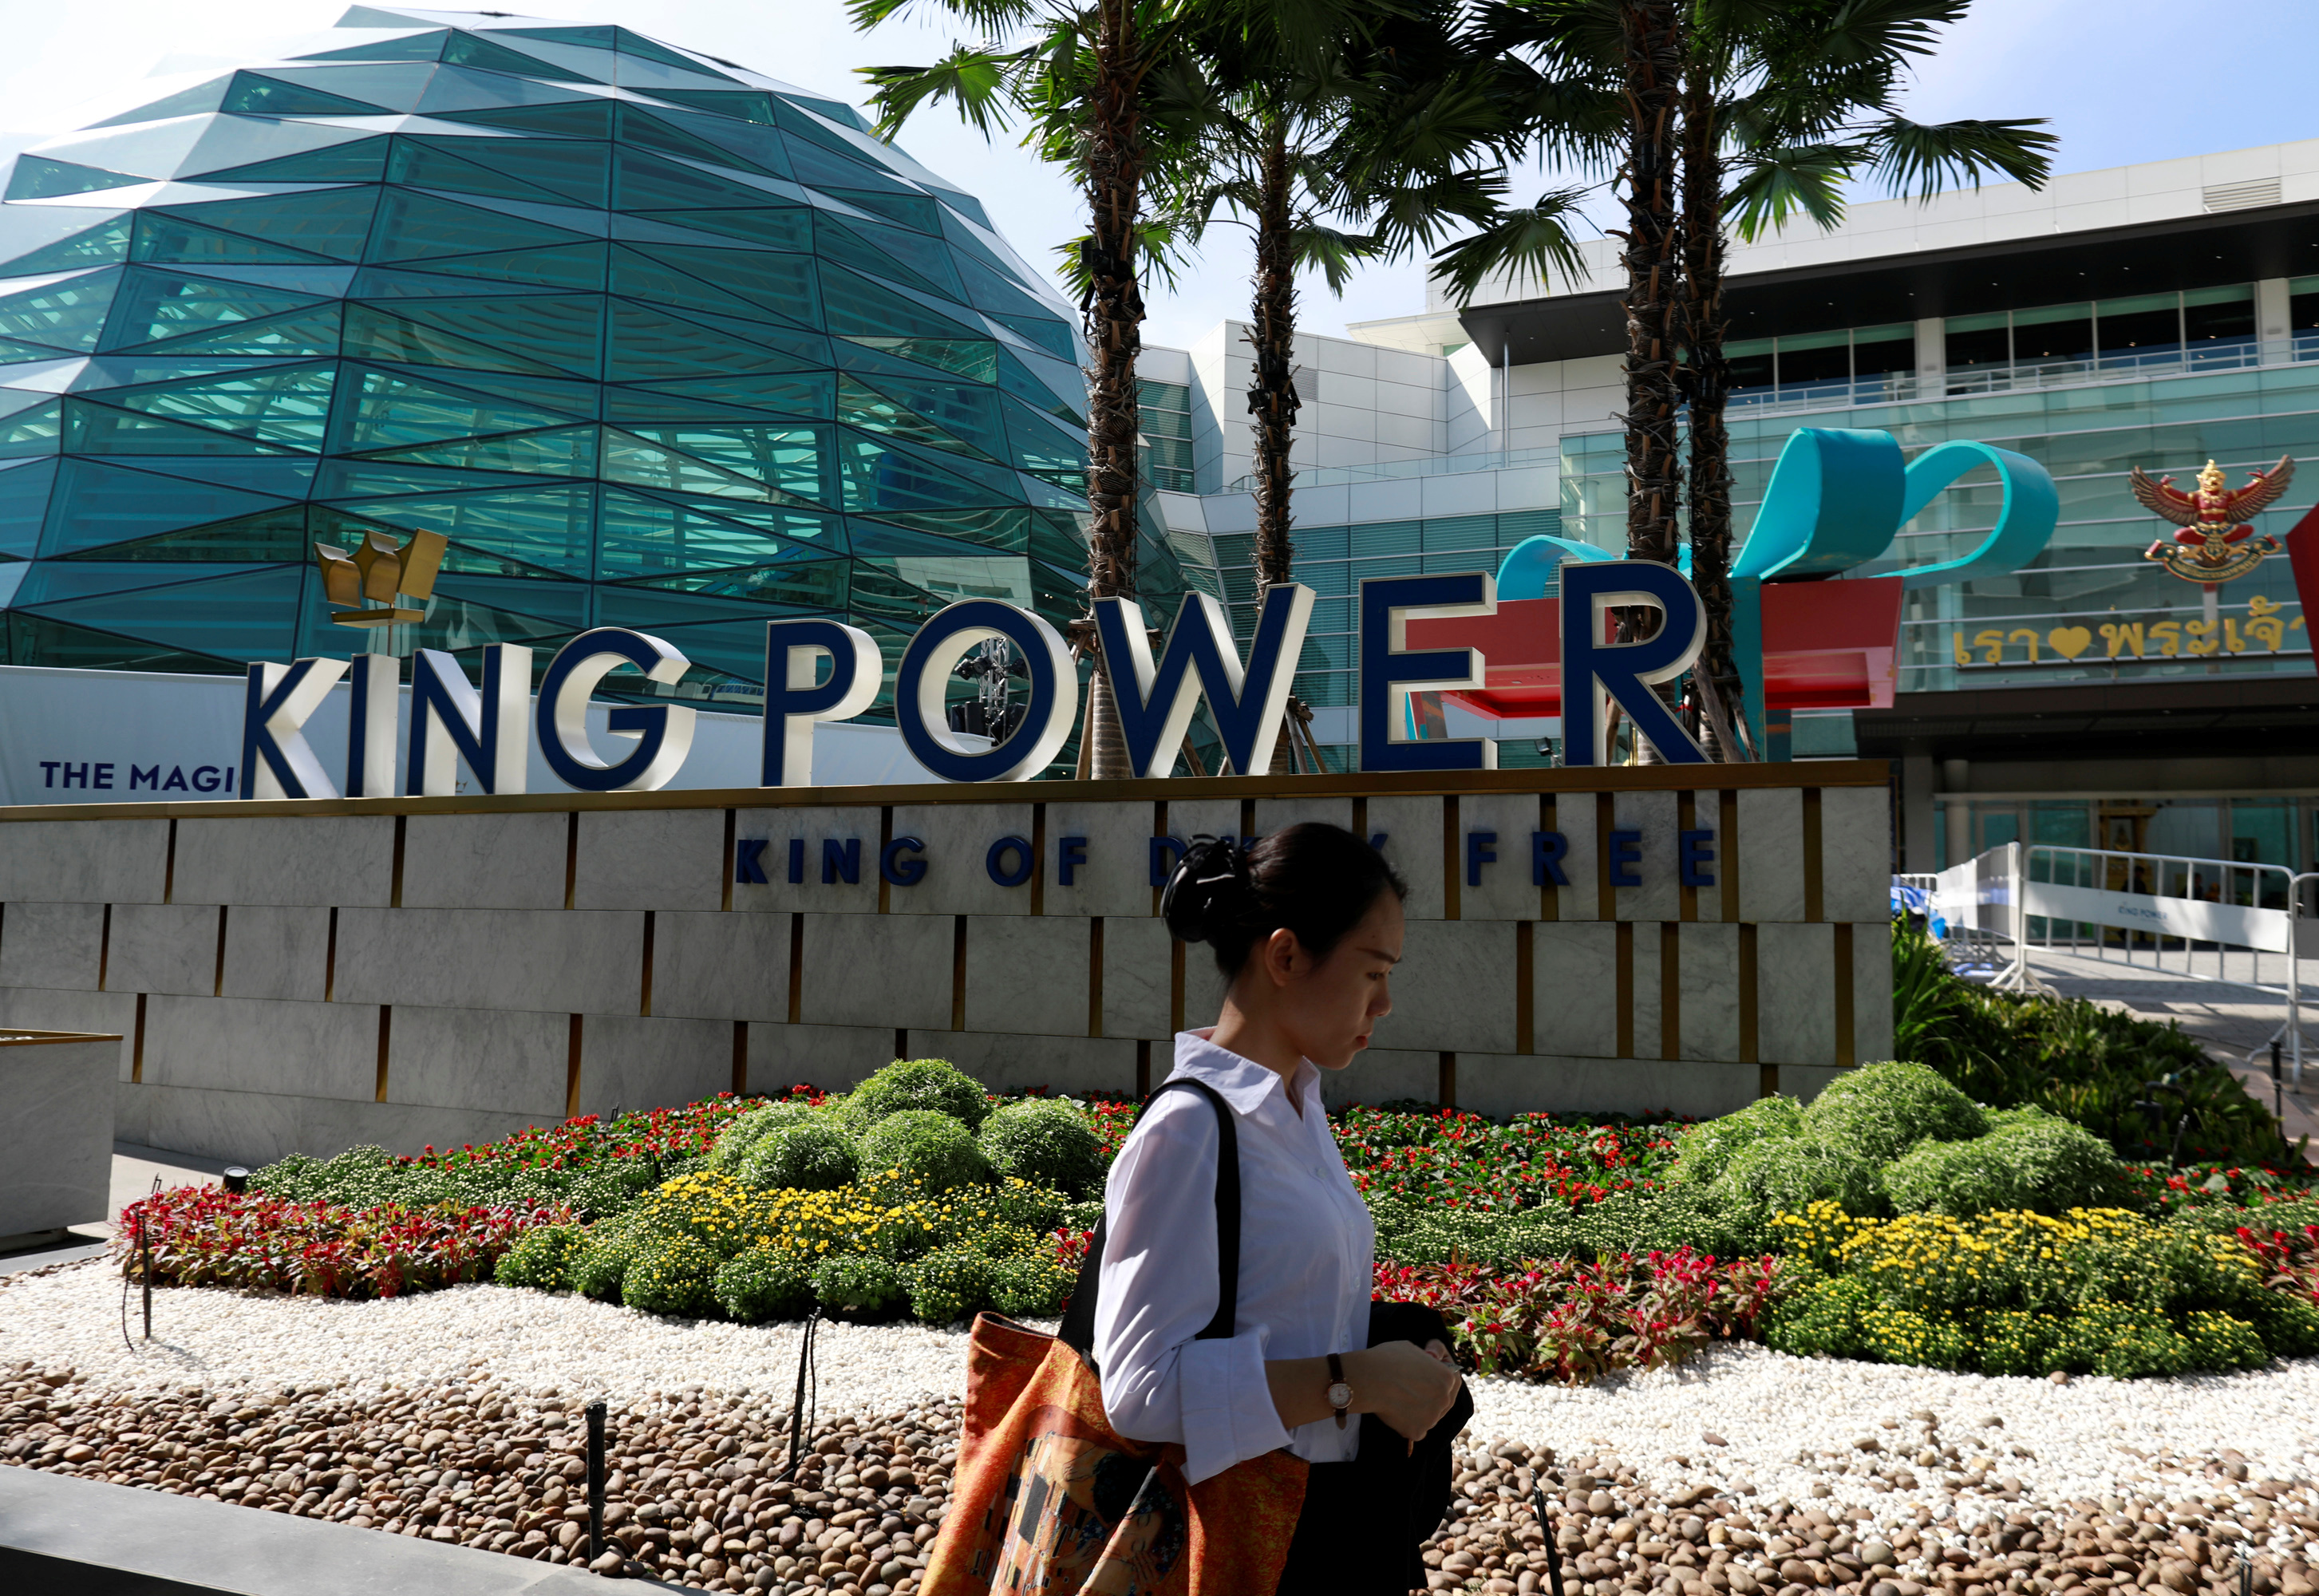 Death of chairman adds to King Power uncertainty as Thai